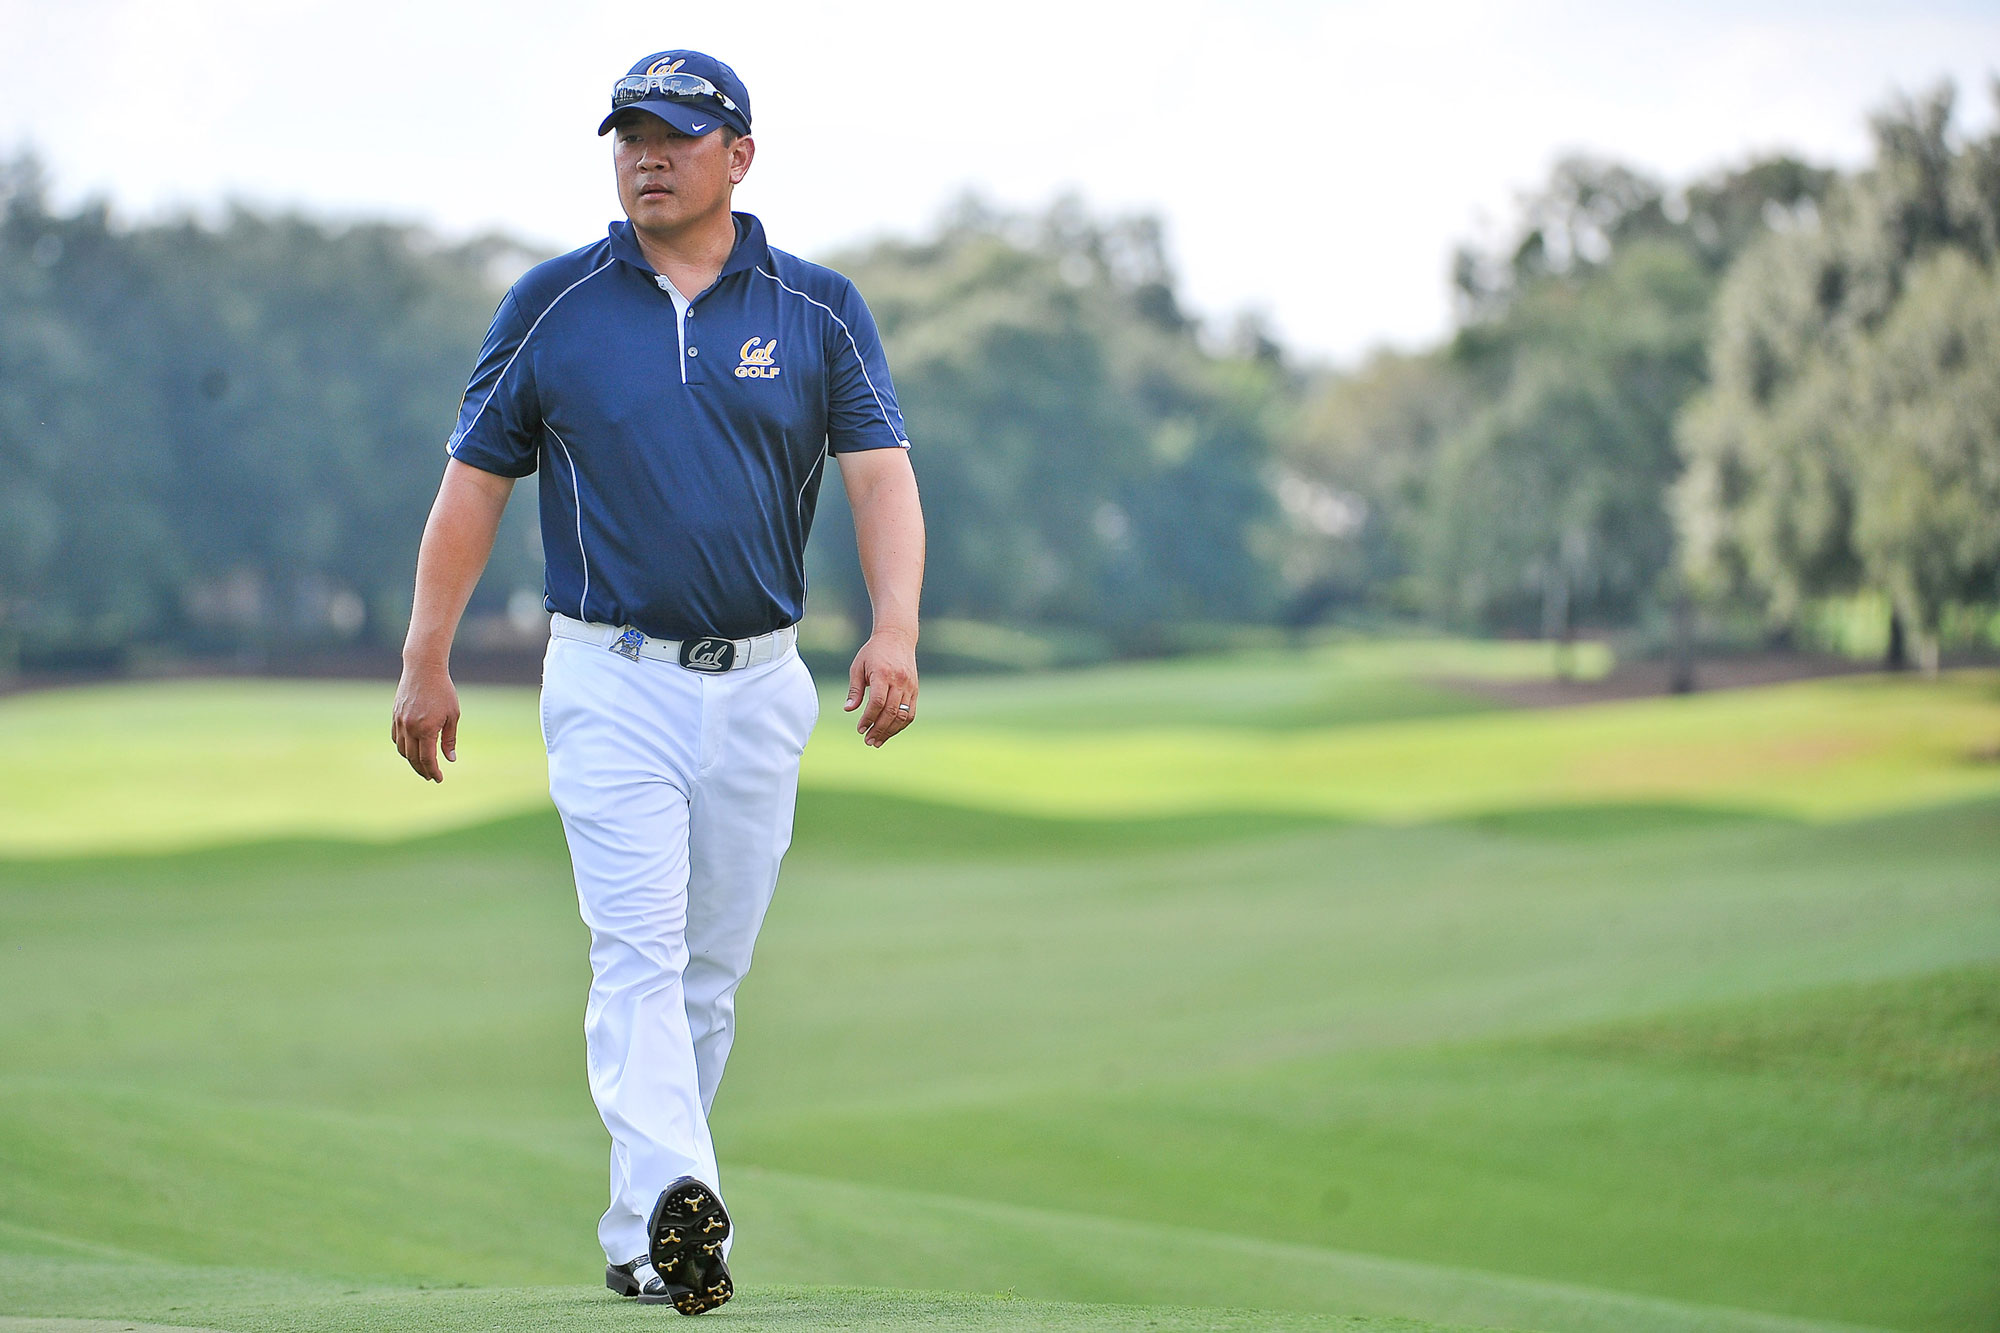 Photo of Chun in a Cal shirt walking on a golf course.